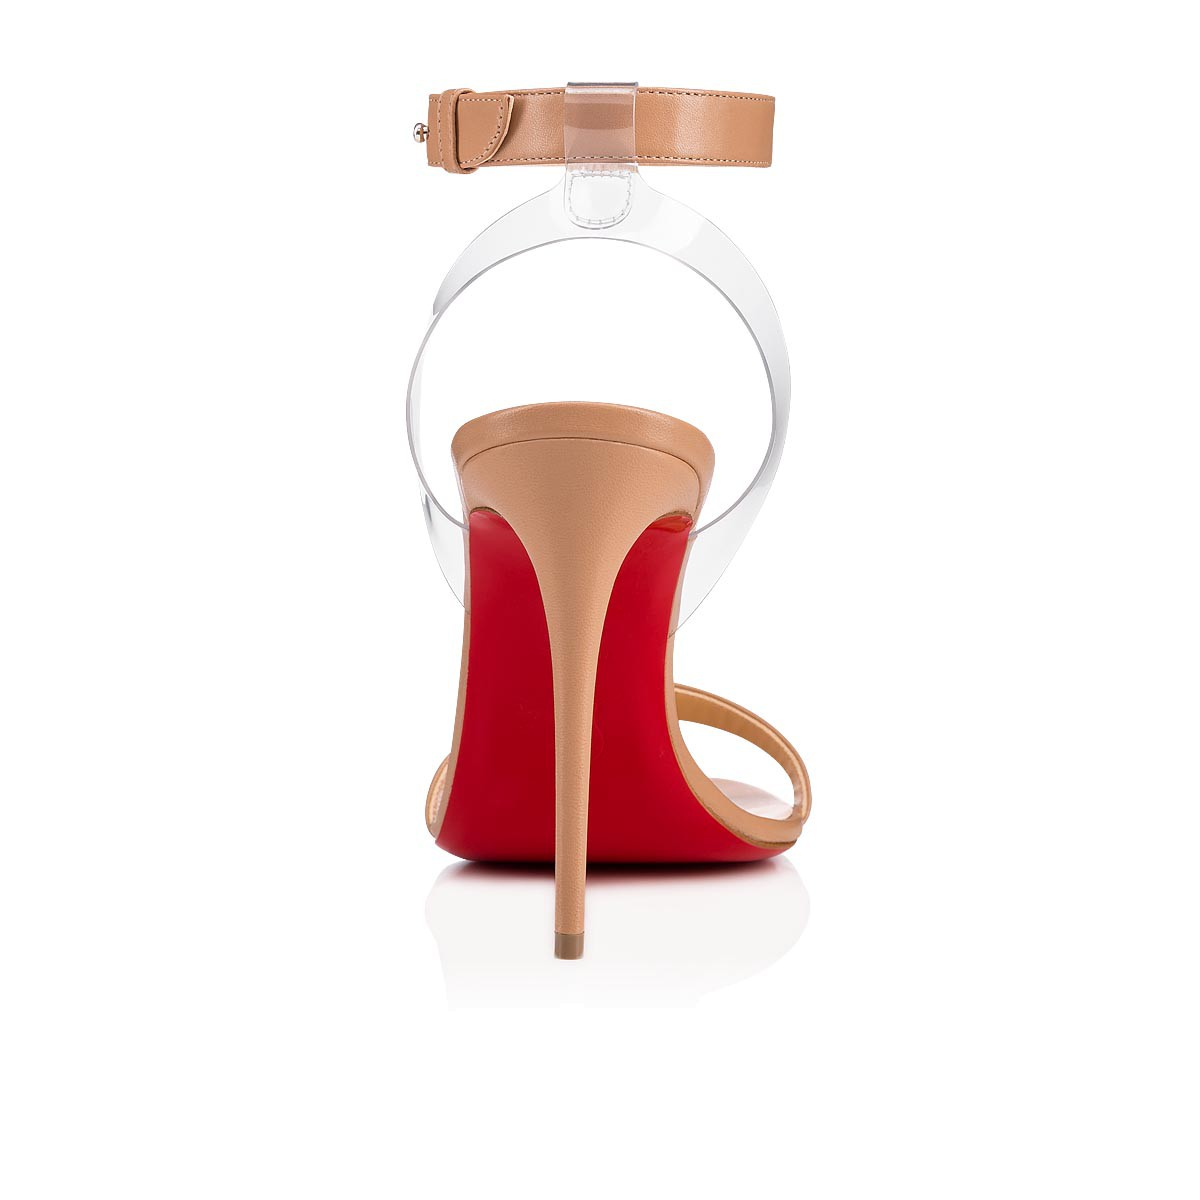 low priced 7b164 450af Jonatina 100 nappa 100 Nude/Transp Leather - Souliers Femme - Christian  Louboutin